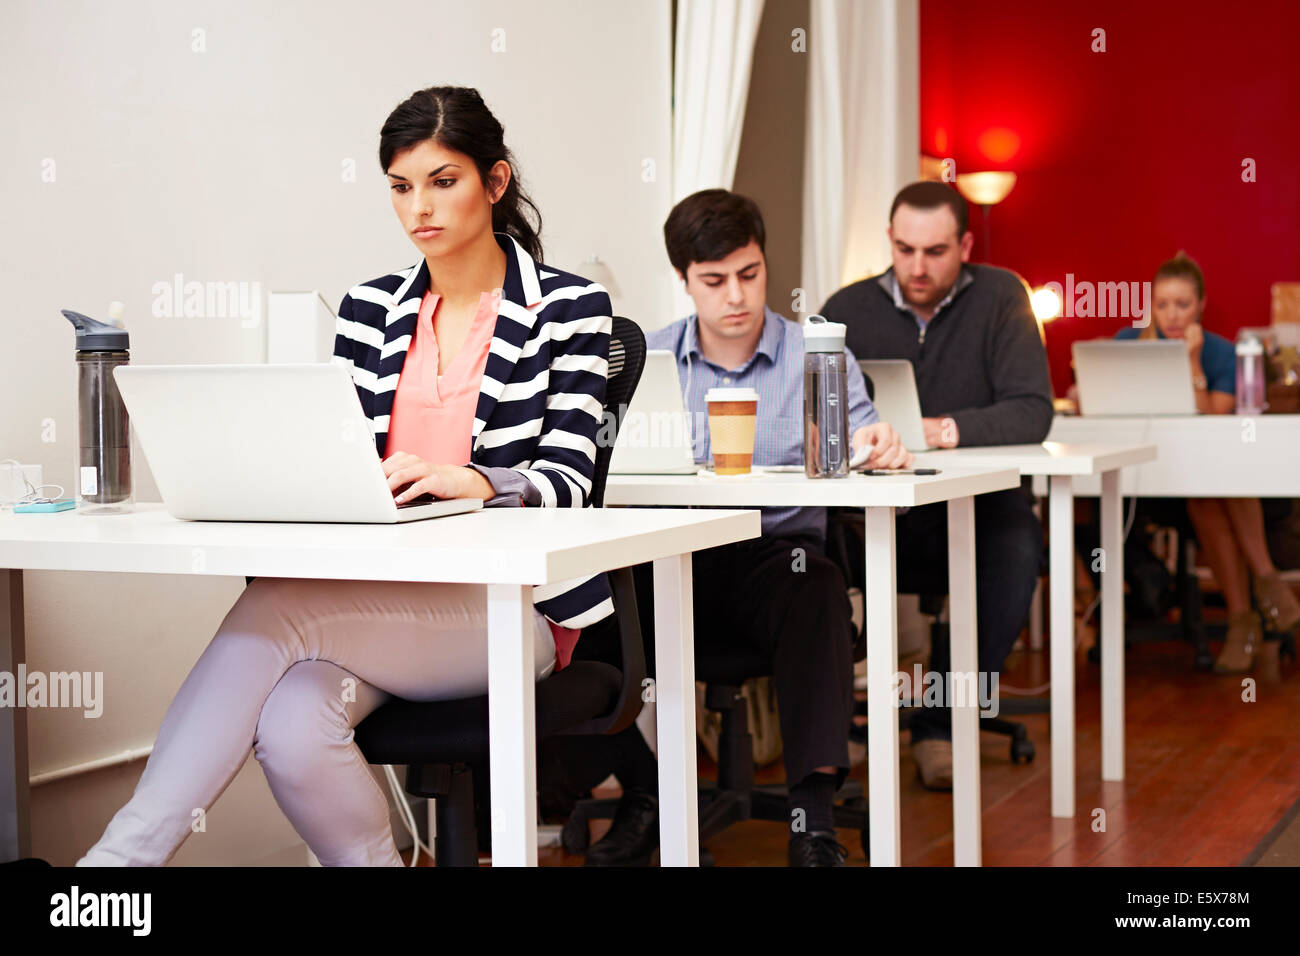 Row of people working on laptops in office - Stock Image